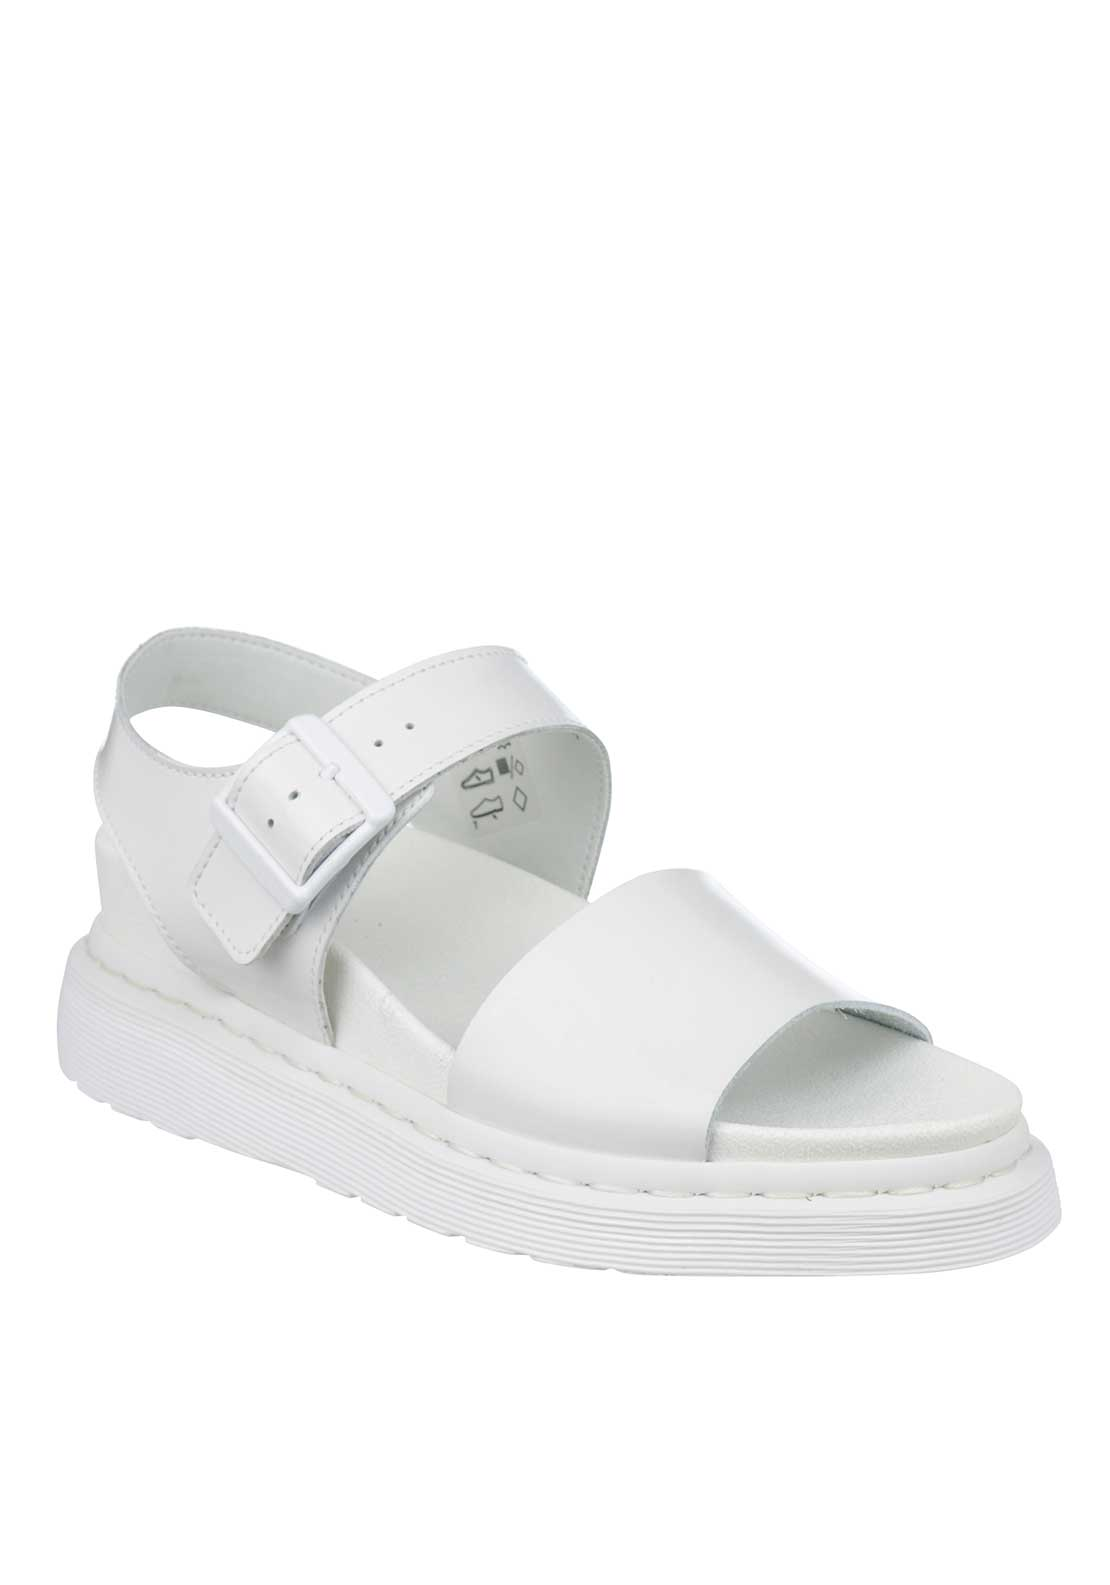 Dr. Martens Womens Shore Patent Platform Sandals, White